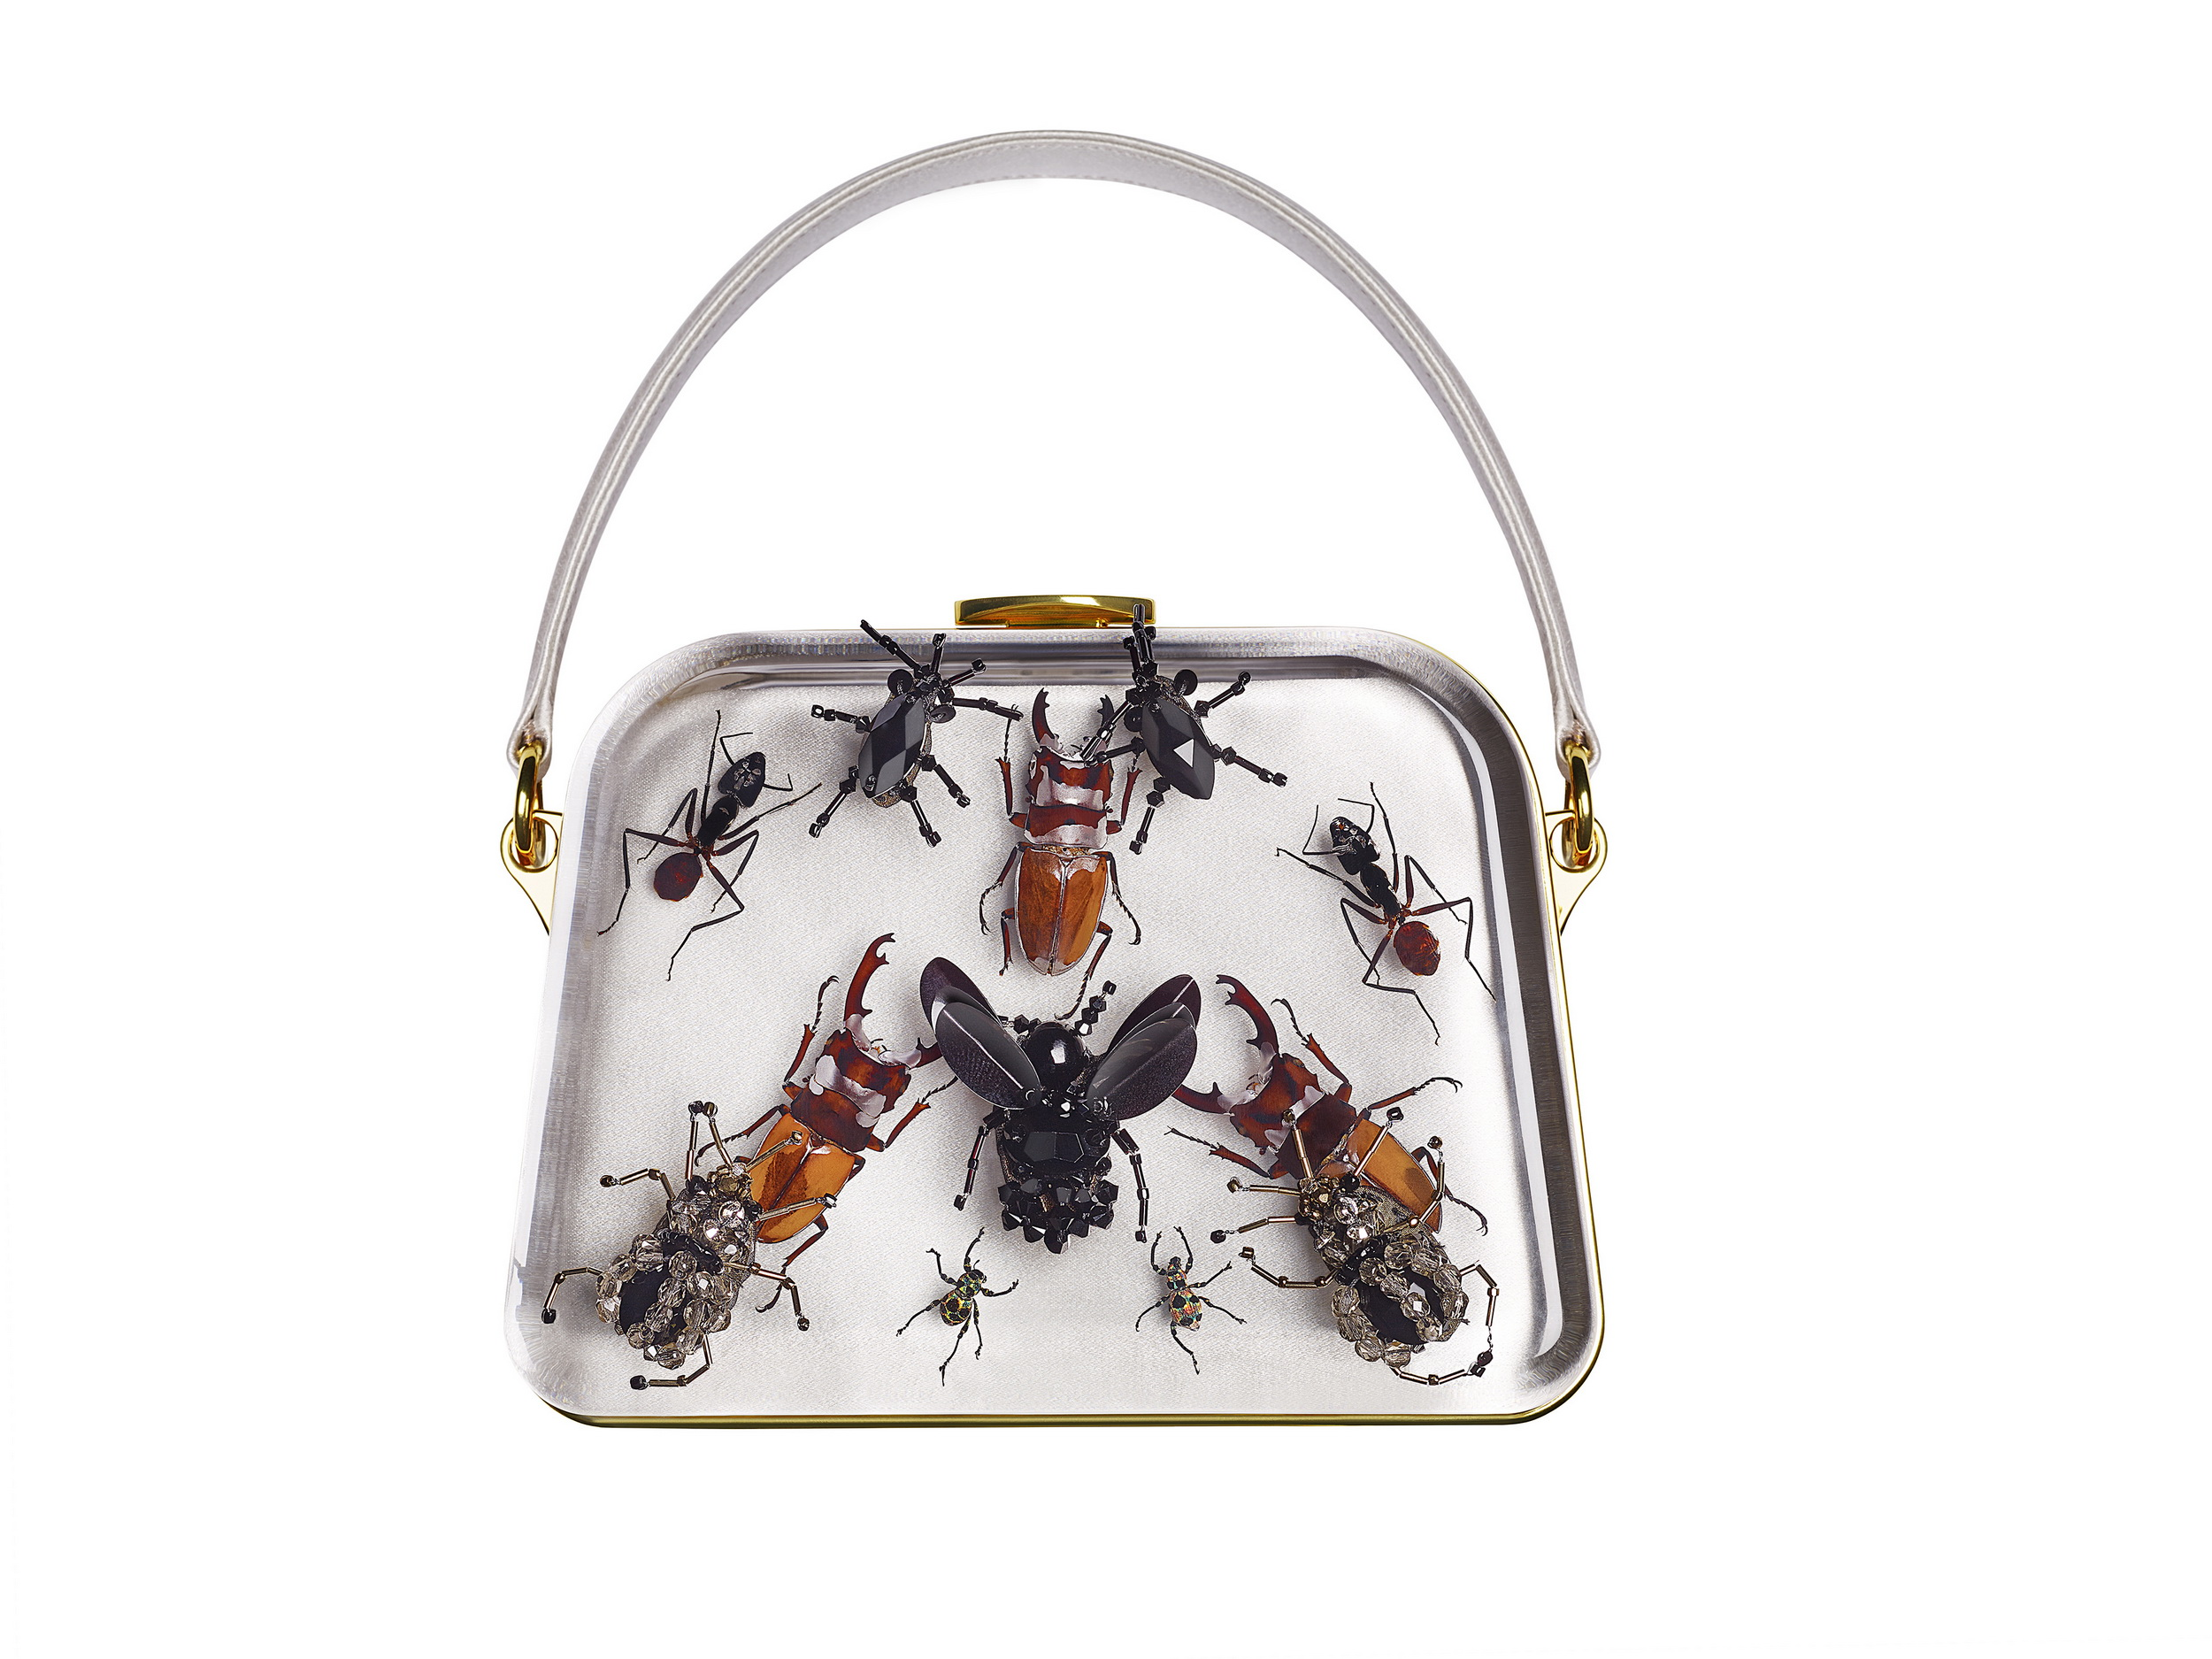 One of Hirst's Entomology bags